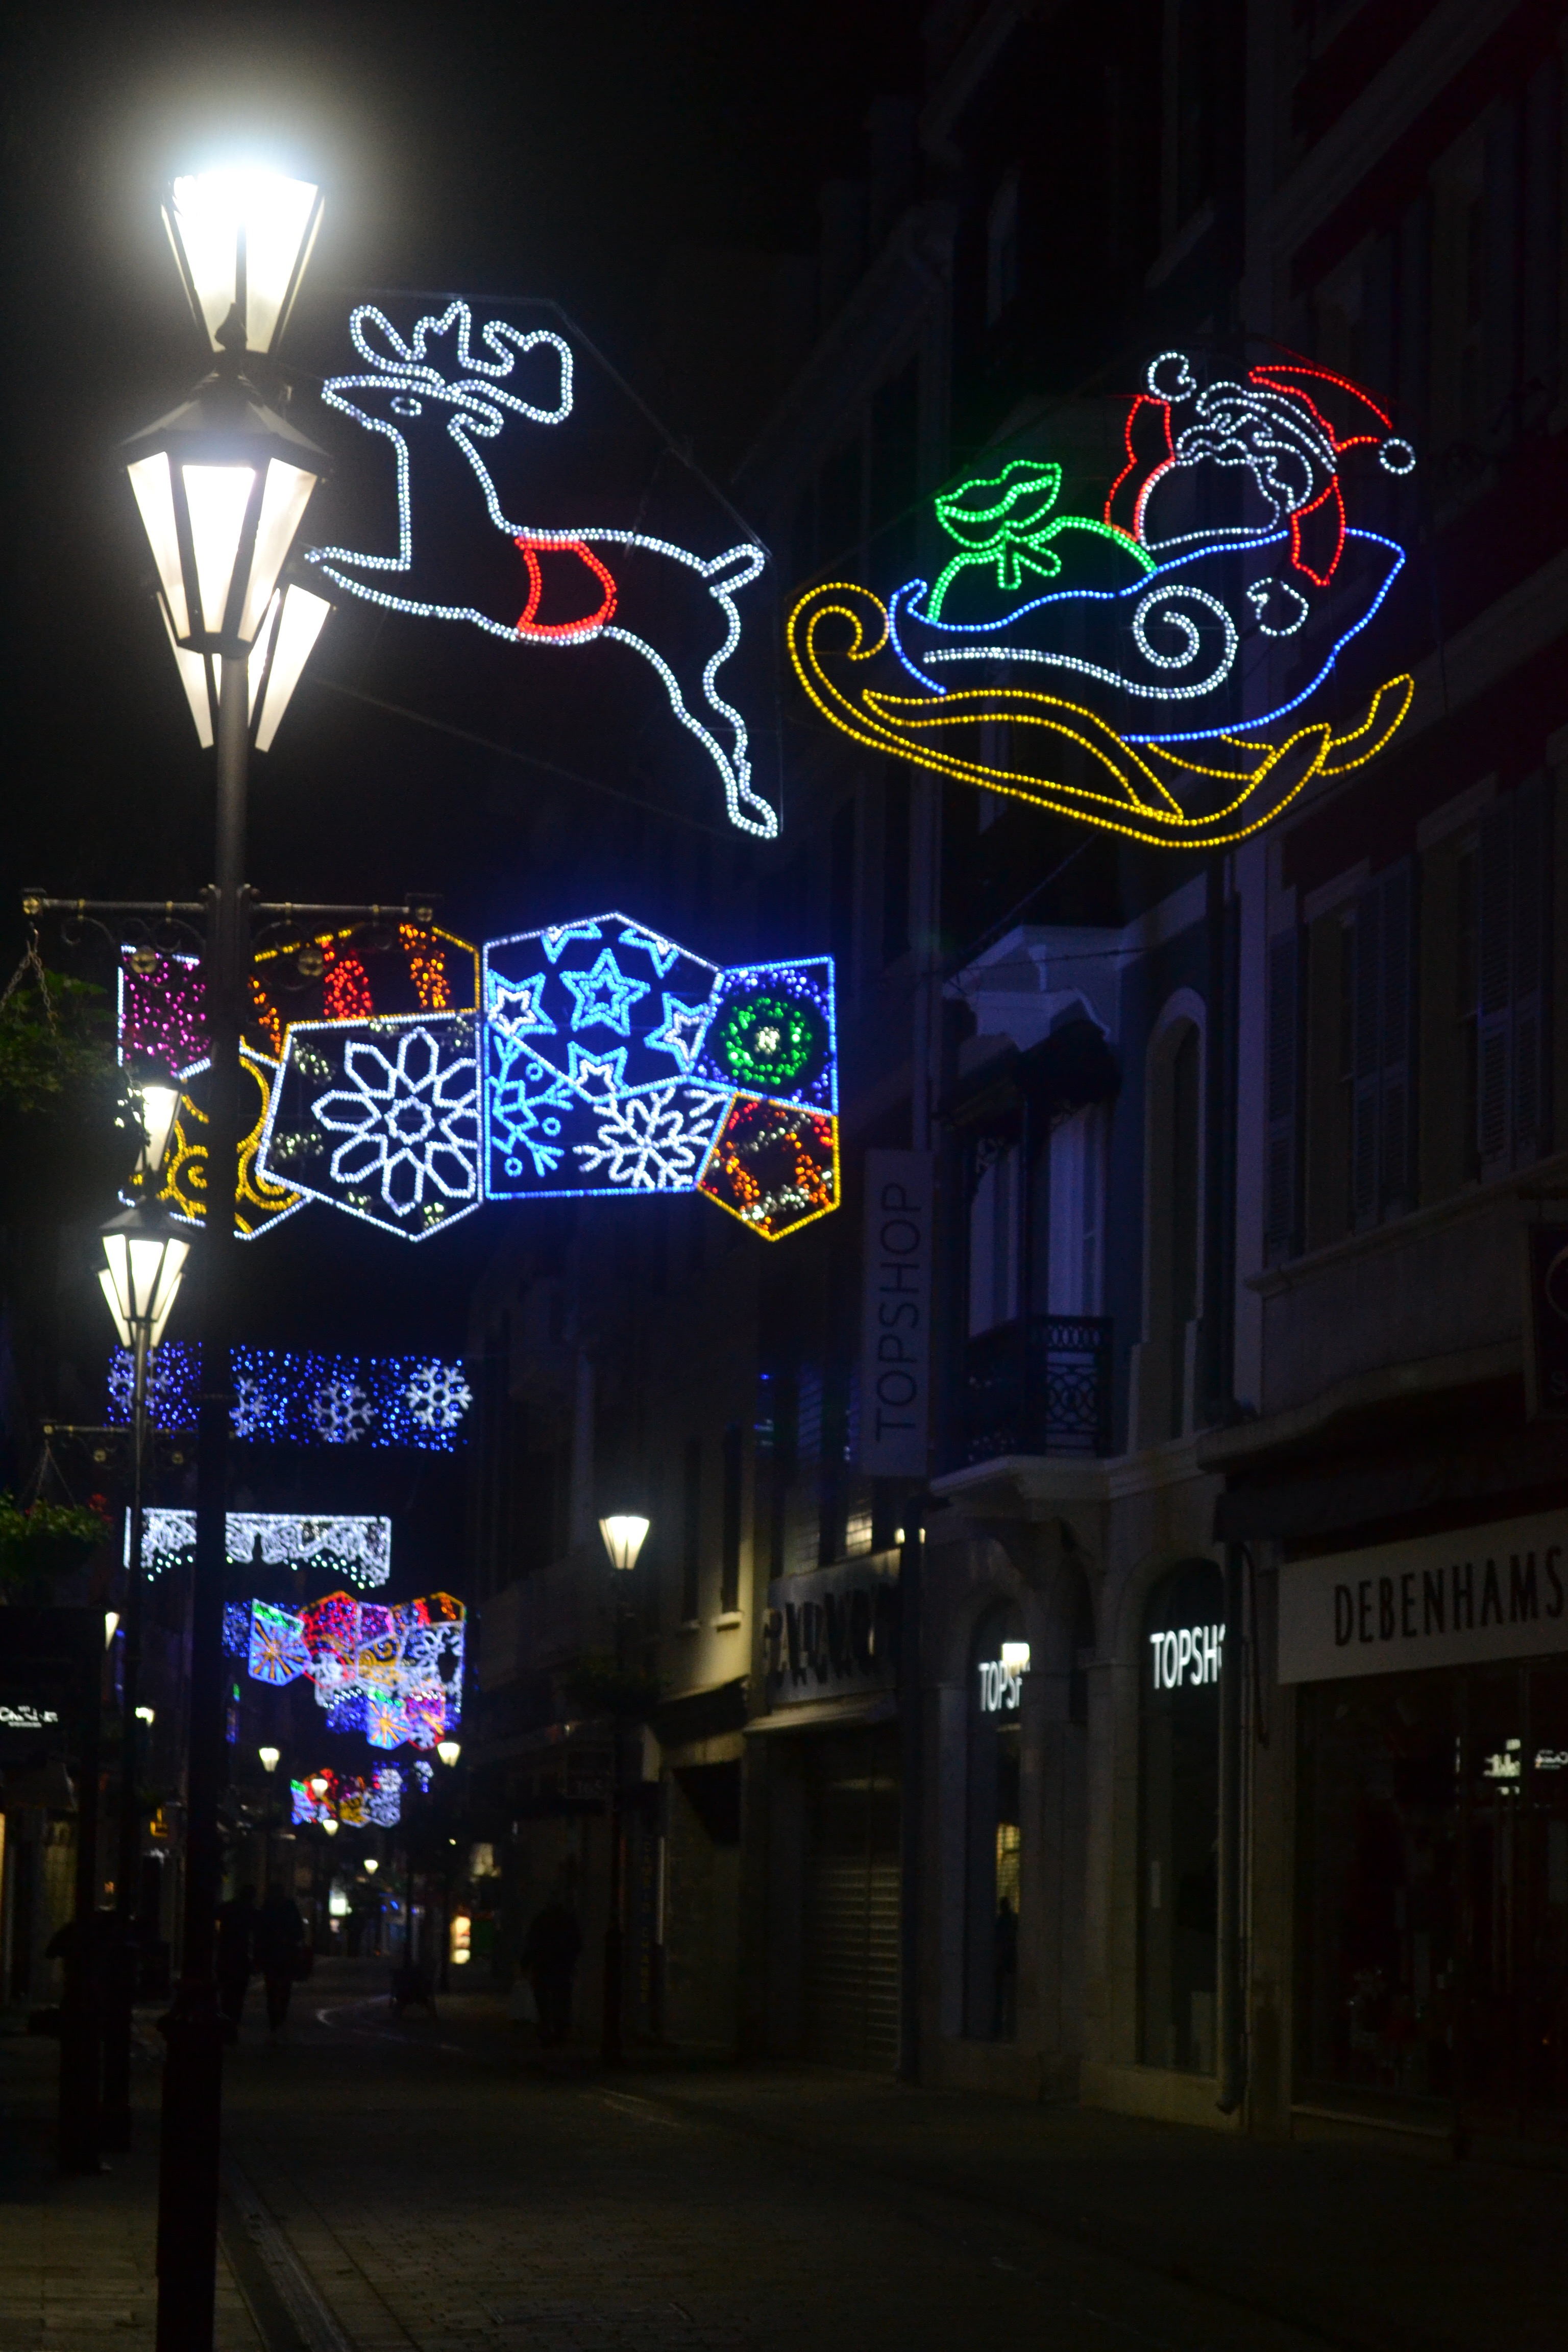 gibraltar does do christmas lights well so i thought id take you on a little nocturnal stroll with me to show you some of them